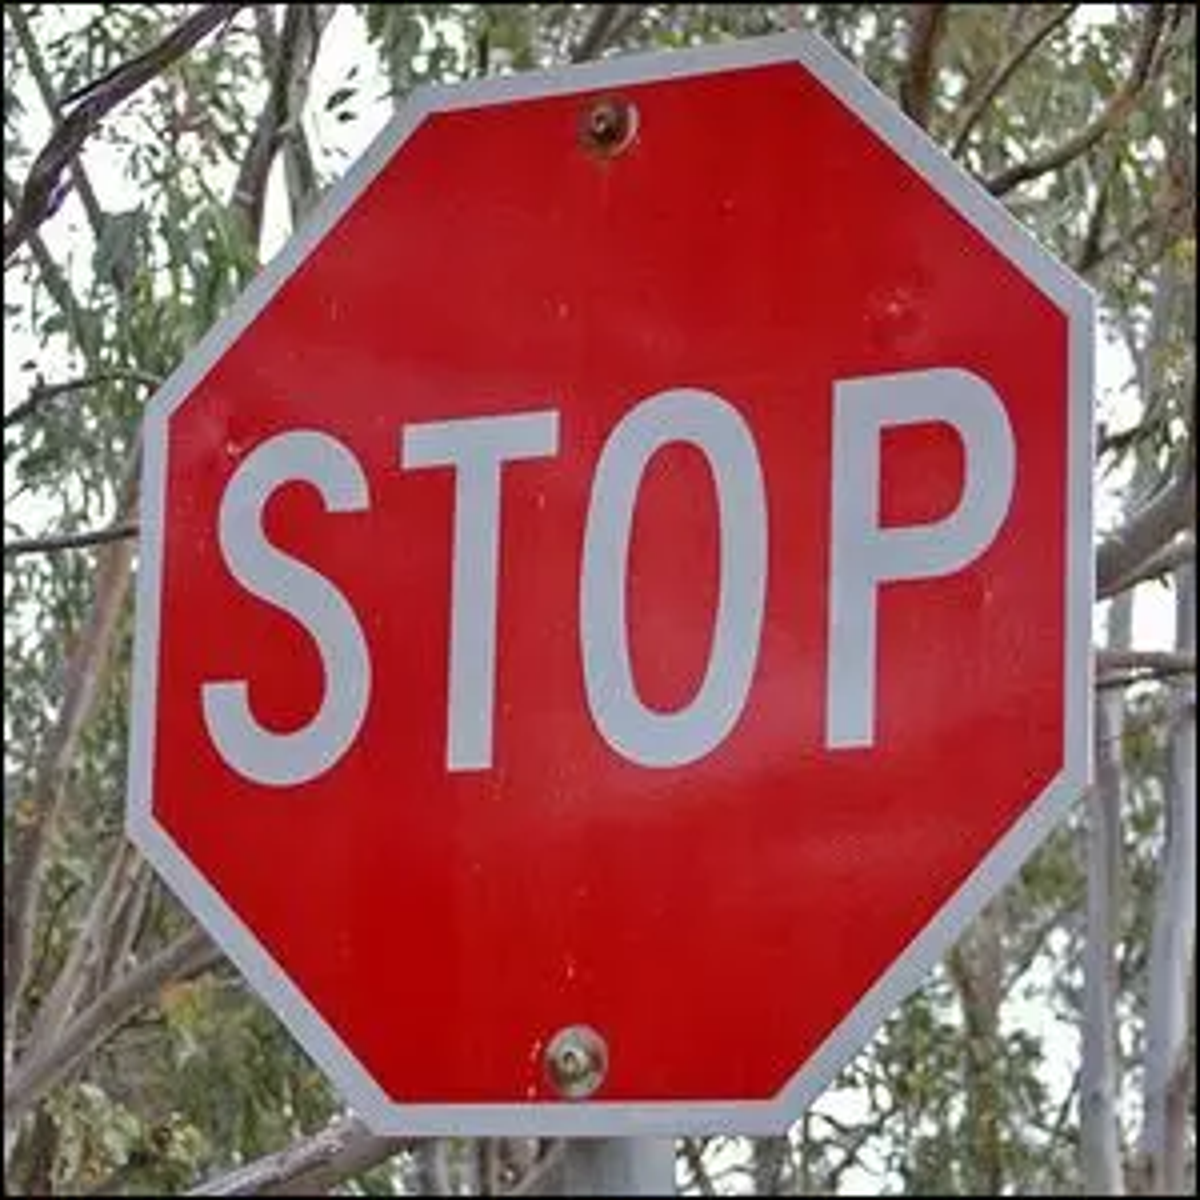 An Australian stop sign, identical to the ones found in the U.S.